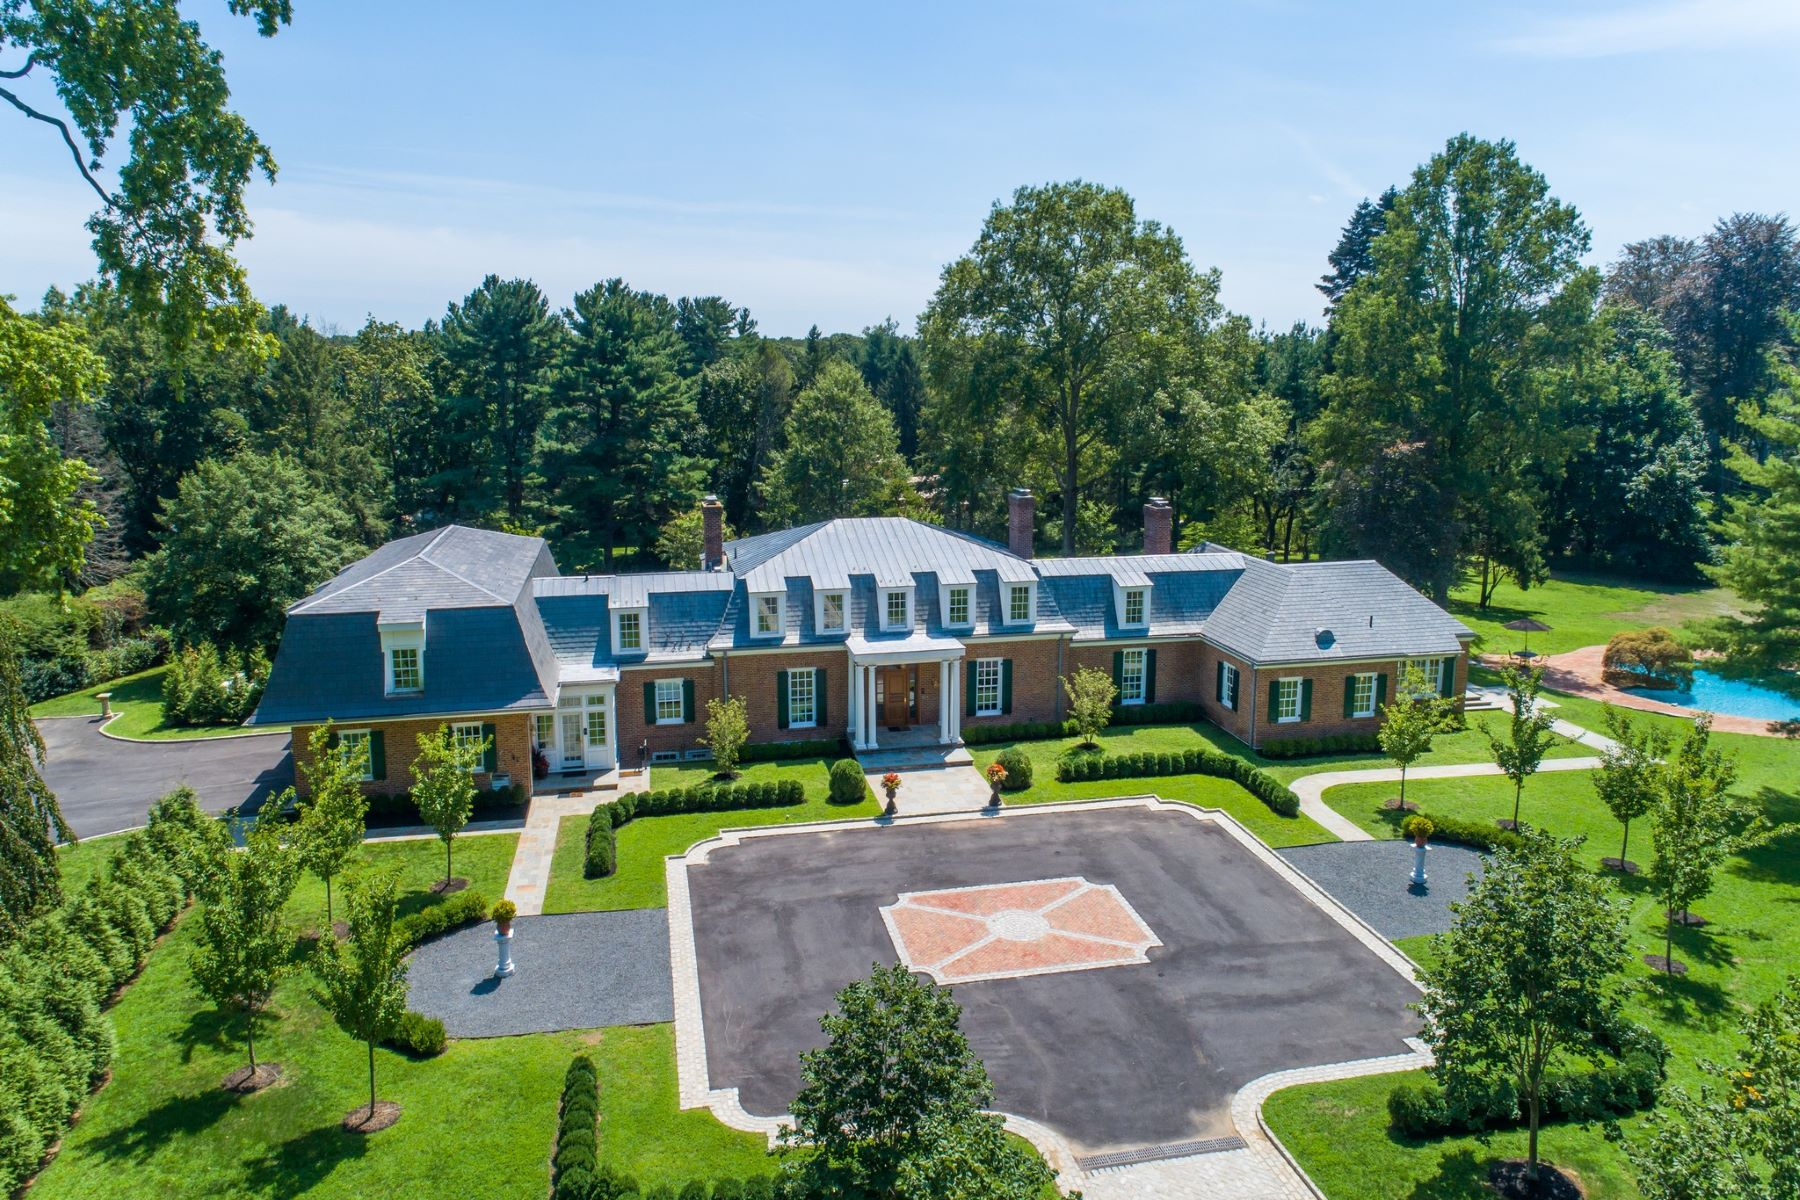 Single Family Homes for Sale at Old Westbury 28 Applegreen Drive Old Westbury, New York 11568 United States